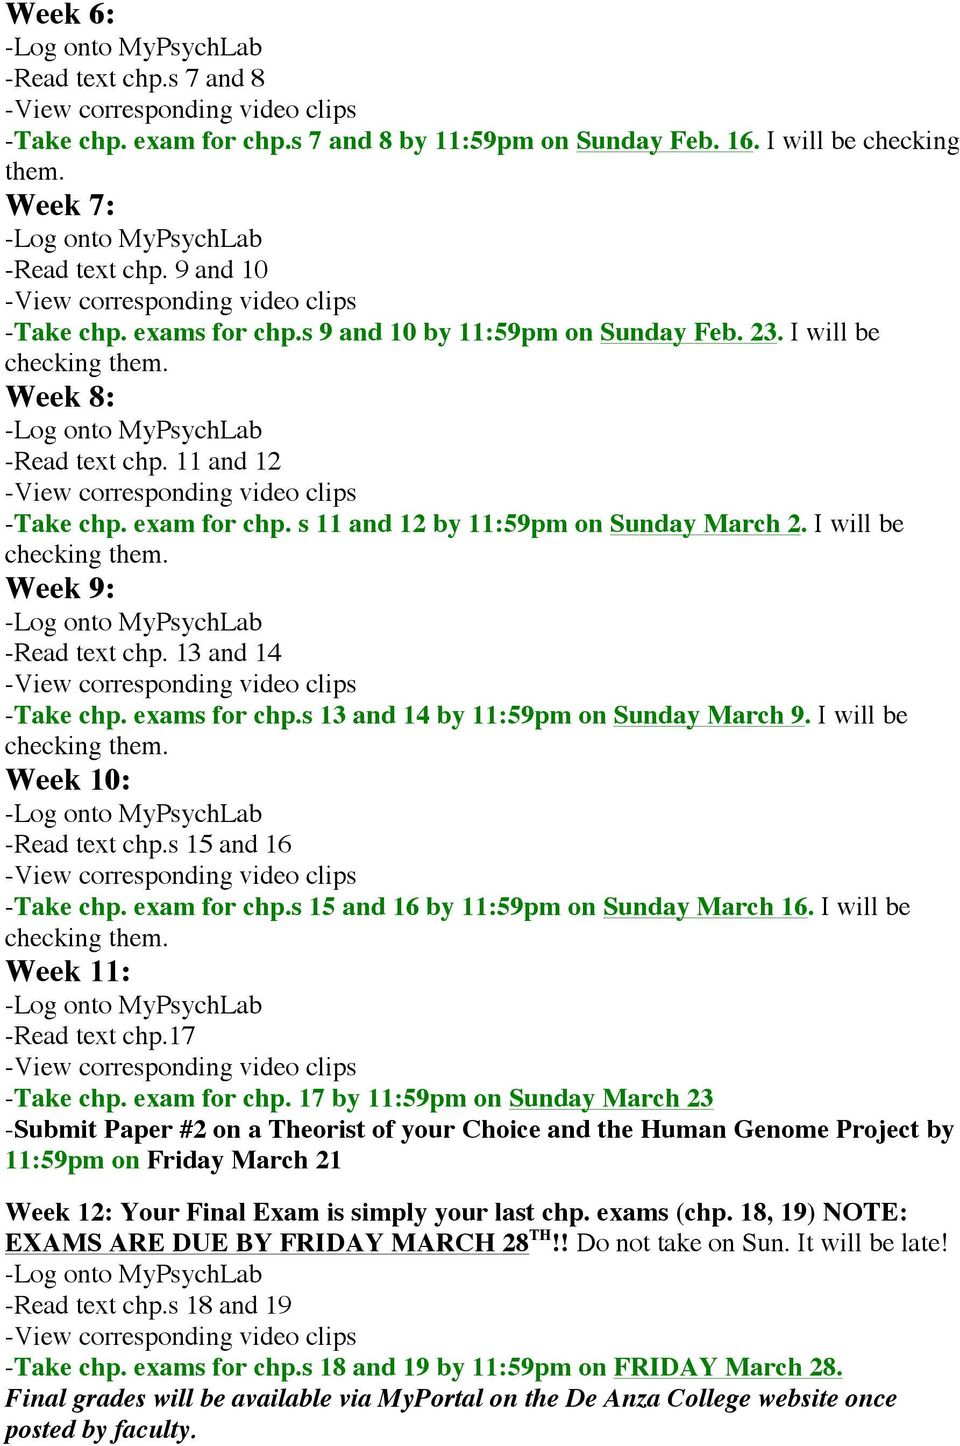 13 and 14 -Take chp. exams for chp.s 13 and 14 by 11:59pm on Sunday March 9. I will be checking them. Week 10: -Read text chp.s 15 and 16 -Take chp. exam for chp.